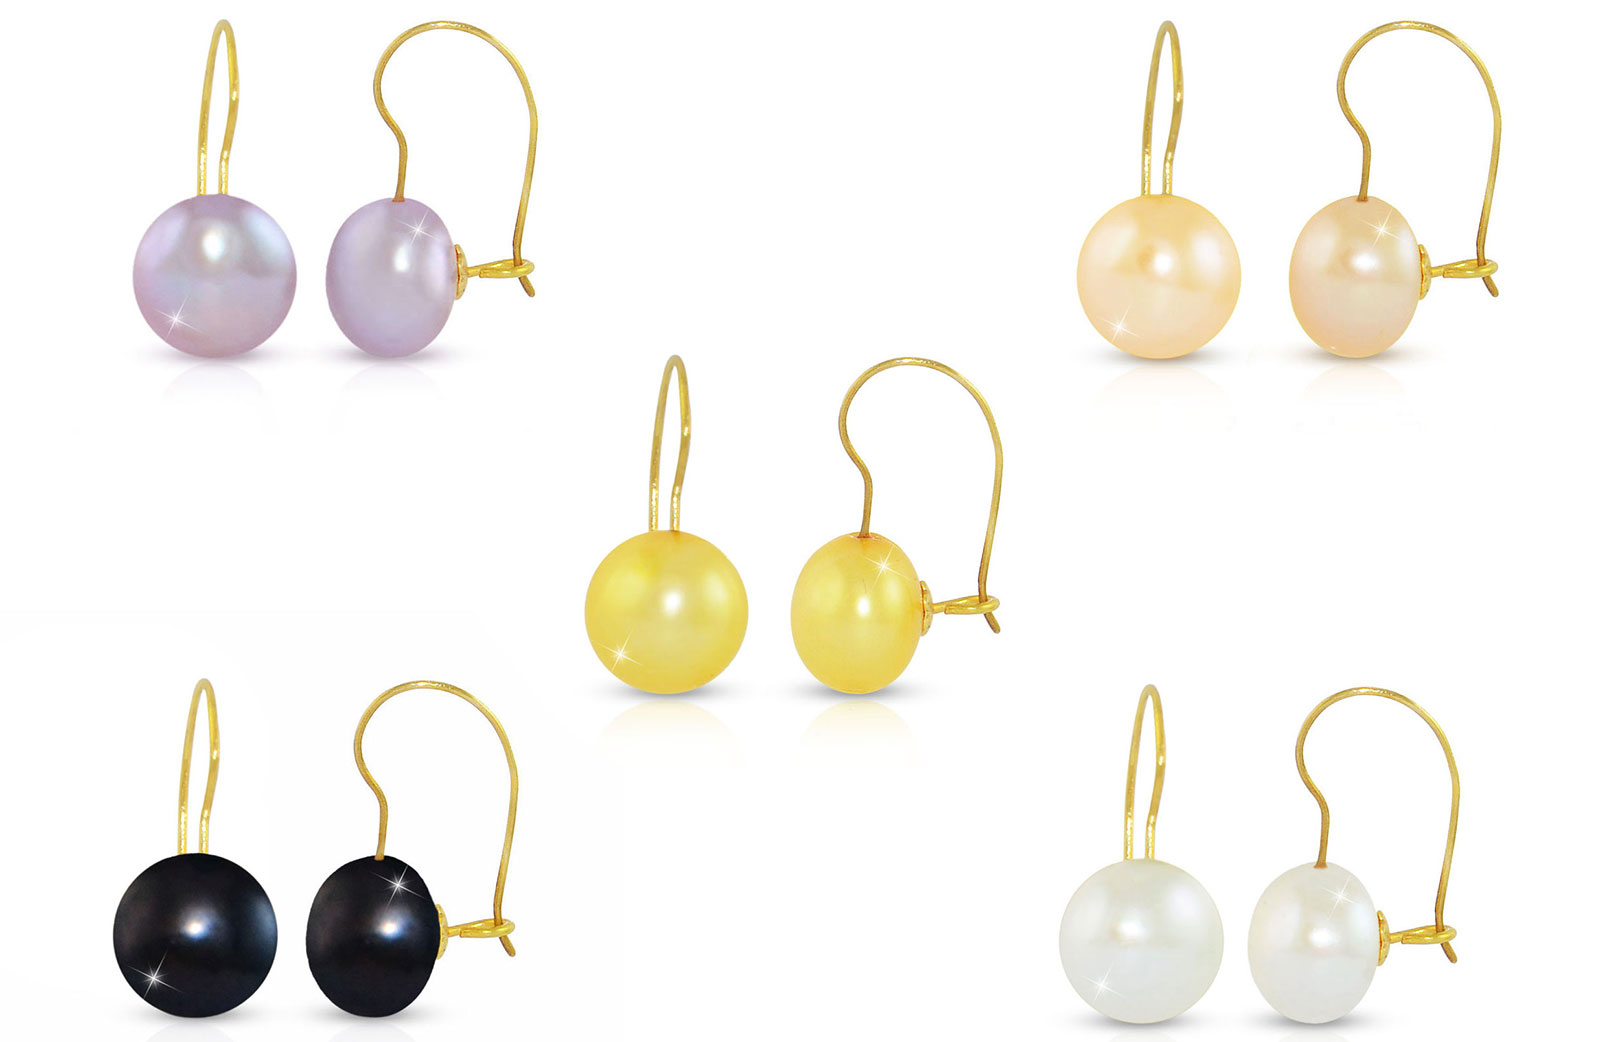 Vera Perla 18K Gold 7mm Genuine Button Pearls 5 Pairs Earrings